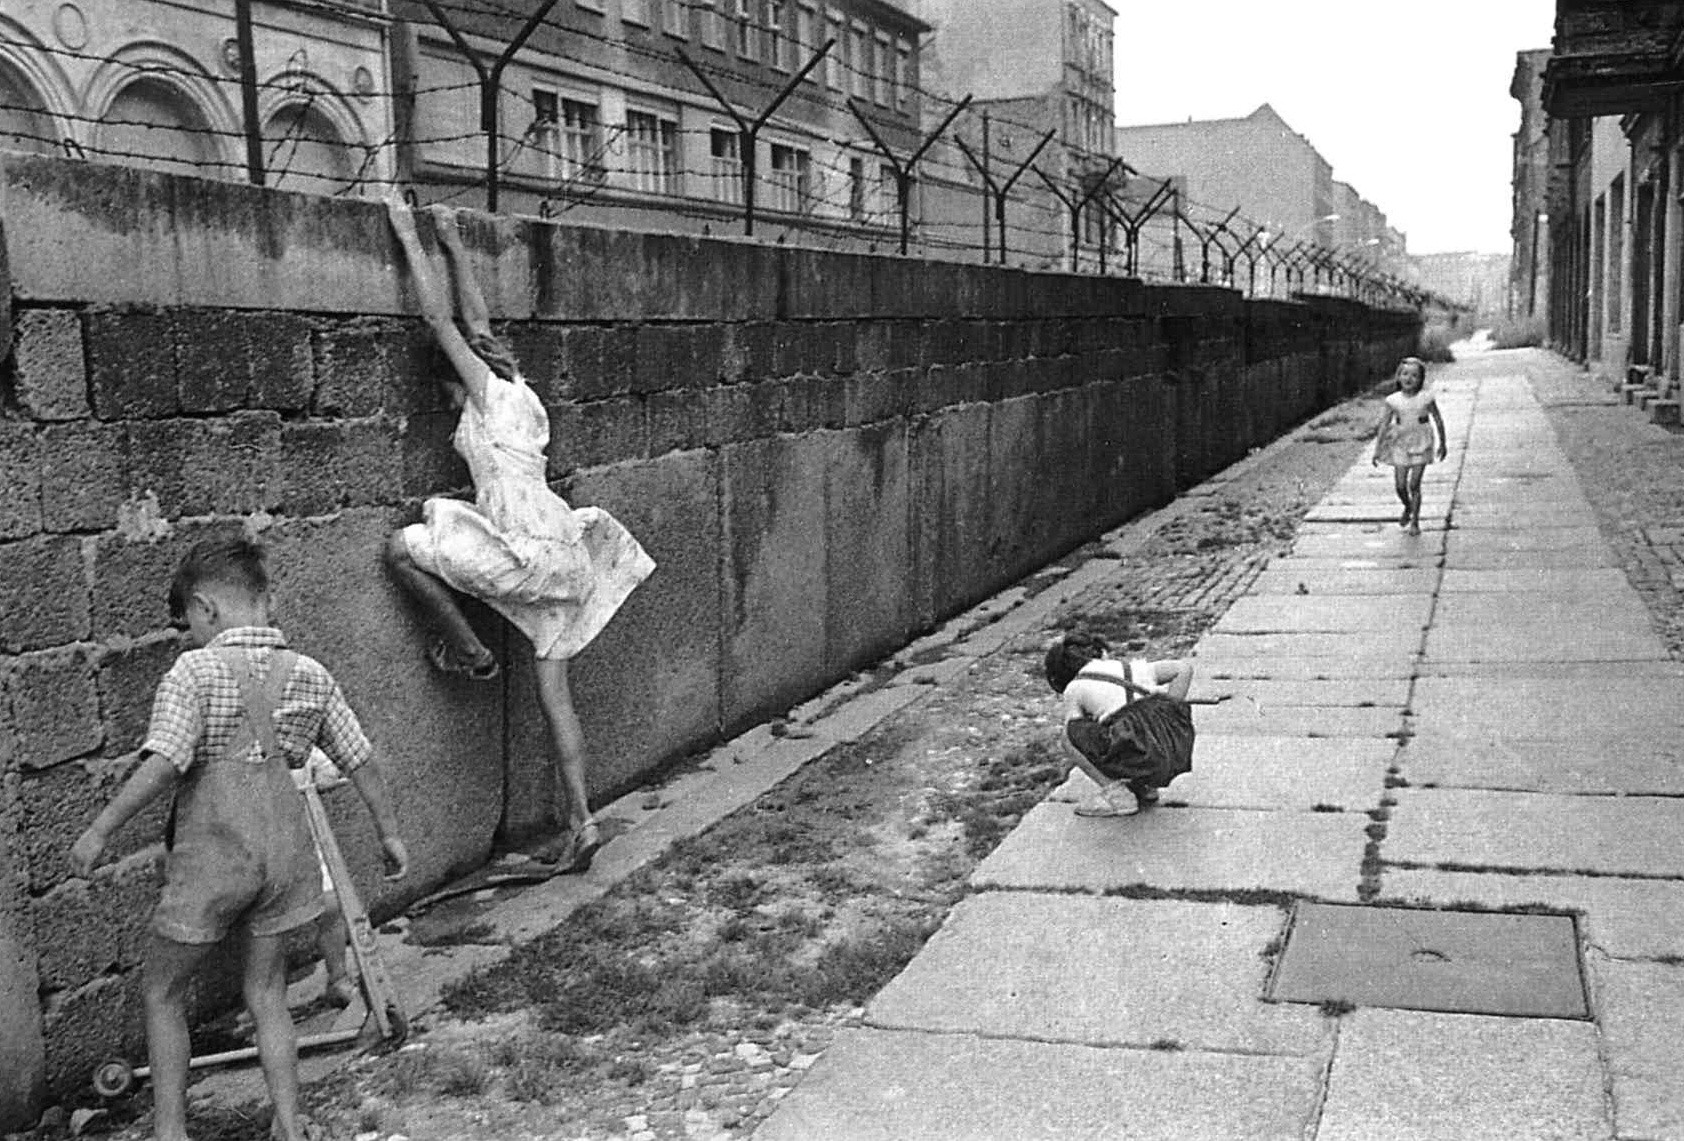 The Berlin Wall in its early form.